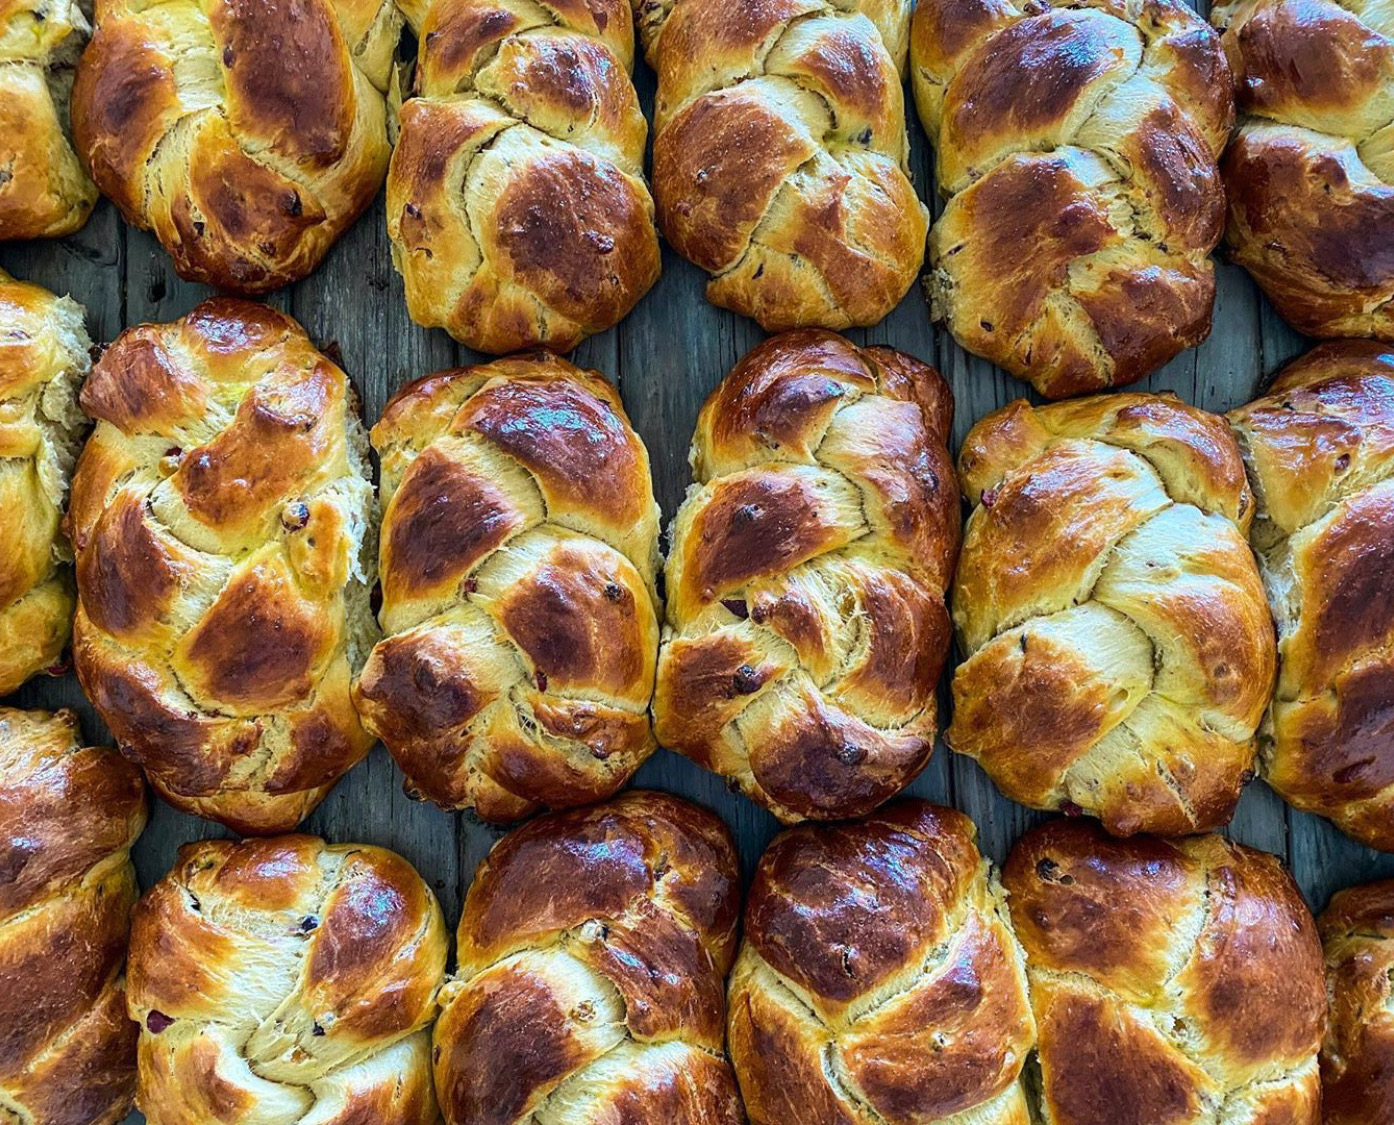 Baked challah shown from above, with golden edges.